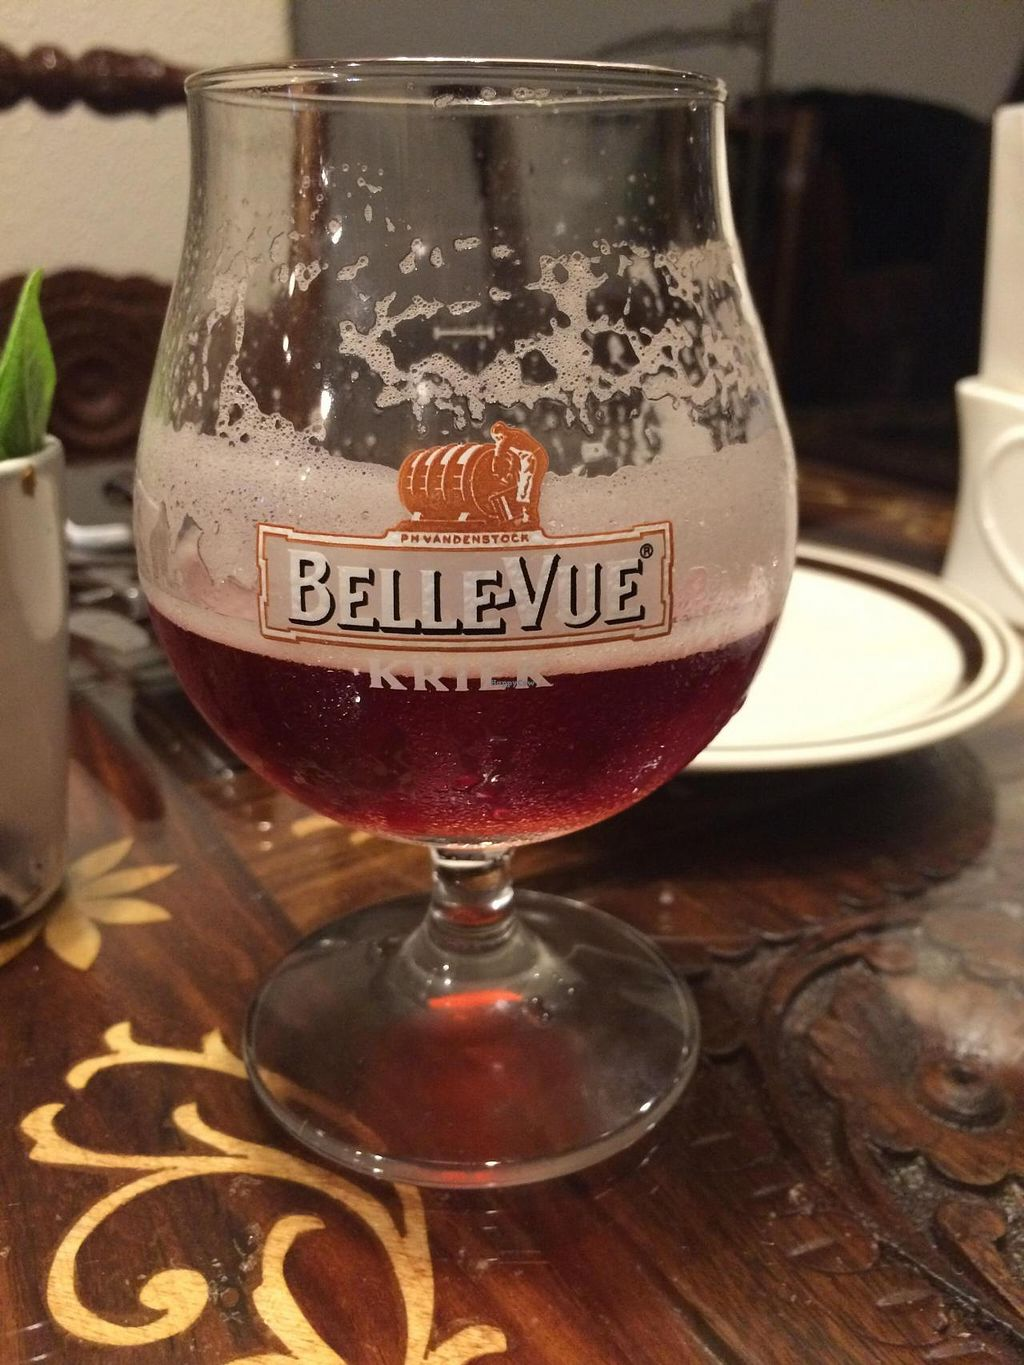 """Photo of Annam Restaurant  by <a href=""""/members/profile/Kristy01"""">Kristy01</a> <br/>They have Belle Vue Kriek on draft! Definitely a plus <br/> April 26, 2015  - <a href='/contact/abuse/image/48538/100413'>Report</a>"""